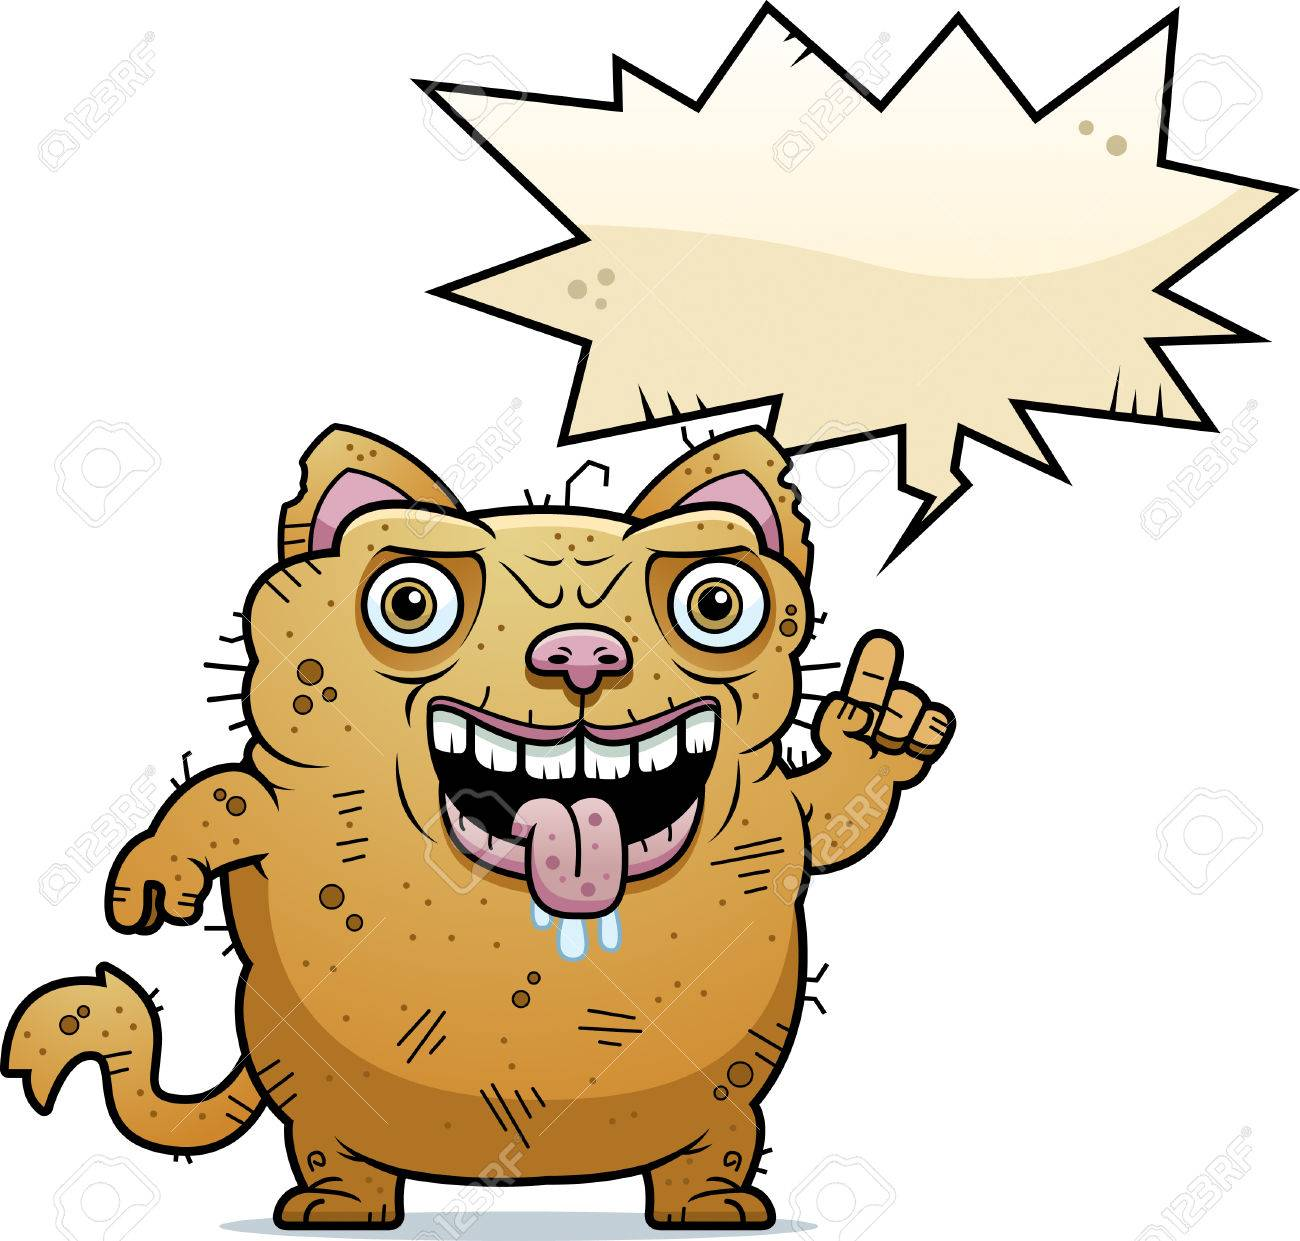 A Cartoon Illustration Of An Ugly Cat Talking Royalty Free Cliparts Vectors And Stock Illustration Image 42751483